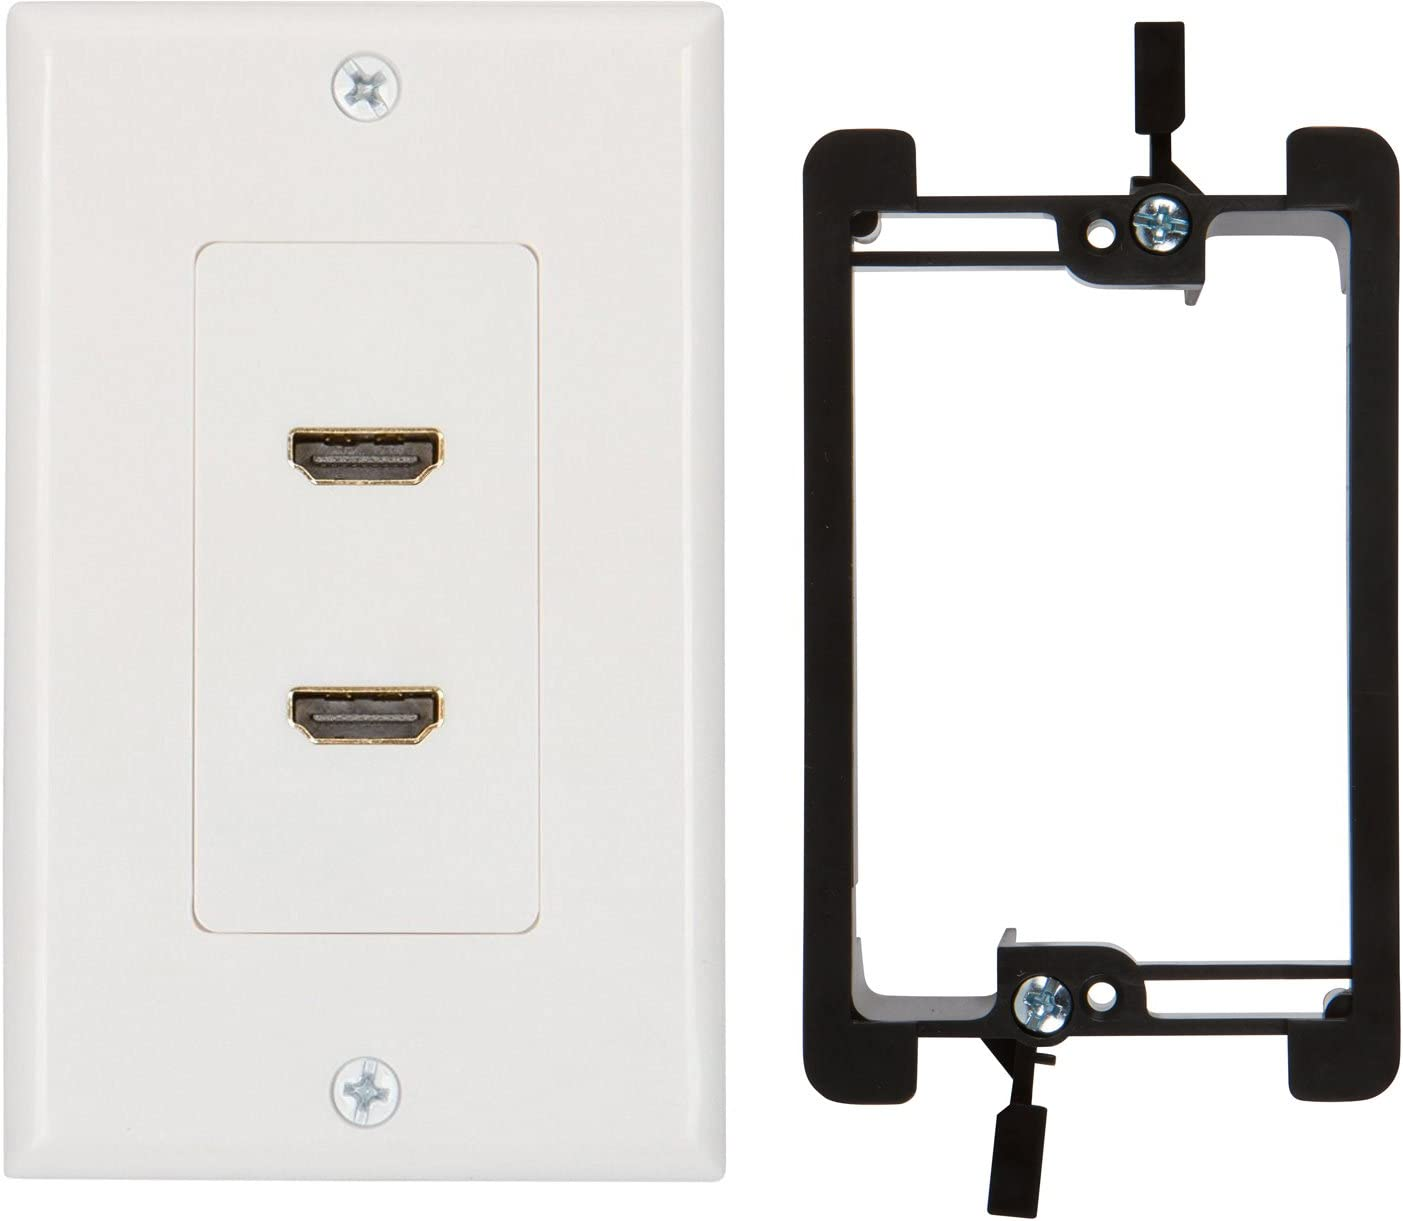 Buyer's Point HDMI Wall Plate [UL Listed] (2 Port) Insert 6-Inch Built-in Flexible Hi-Speed HDMI Cable with Ethernet- Decora Style 2-Piece Pigtail Jack/Plug for Dual Outlet Port (White Kit 2 Port)